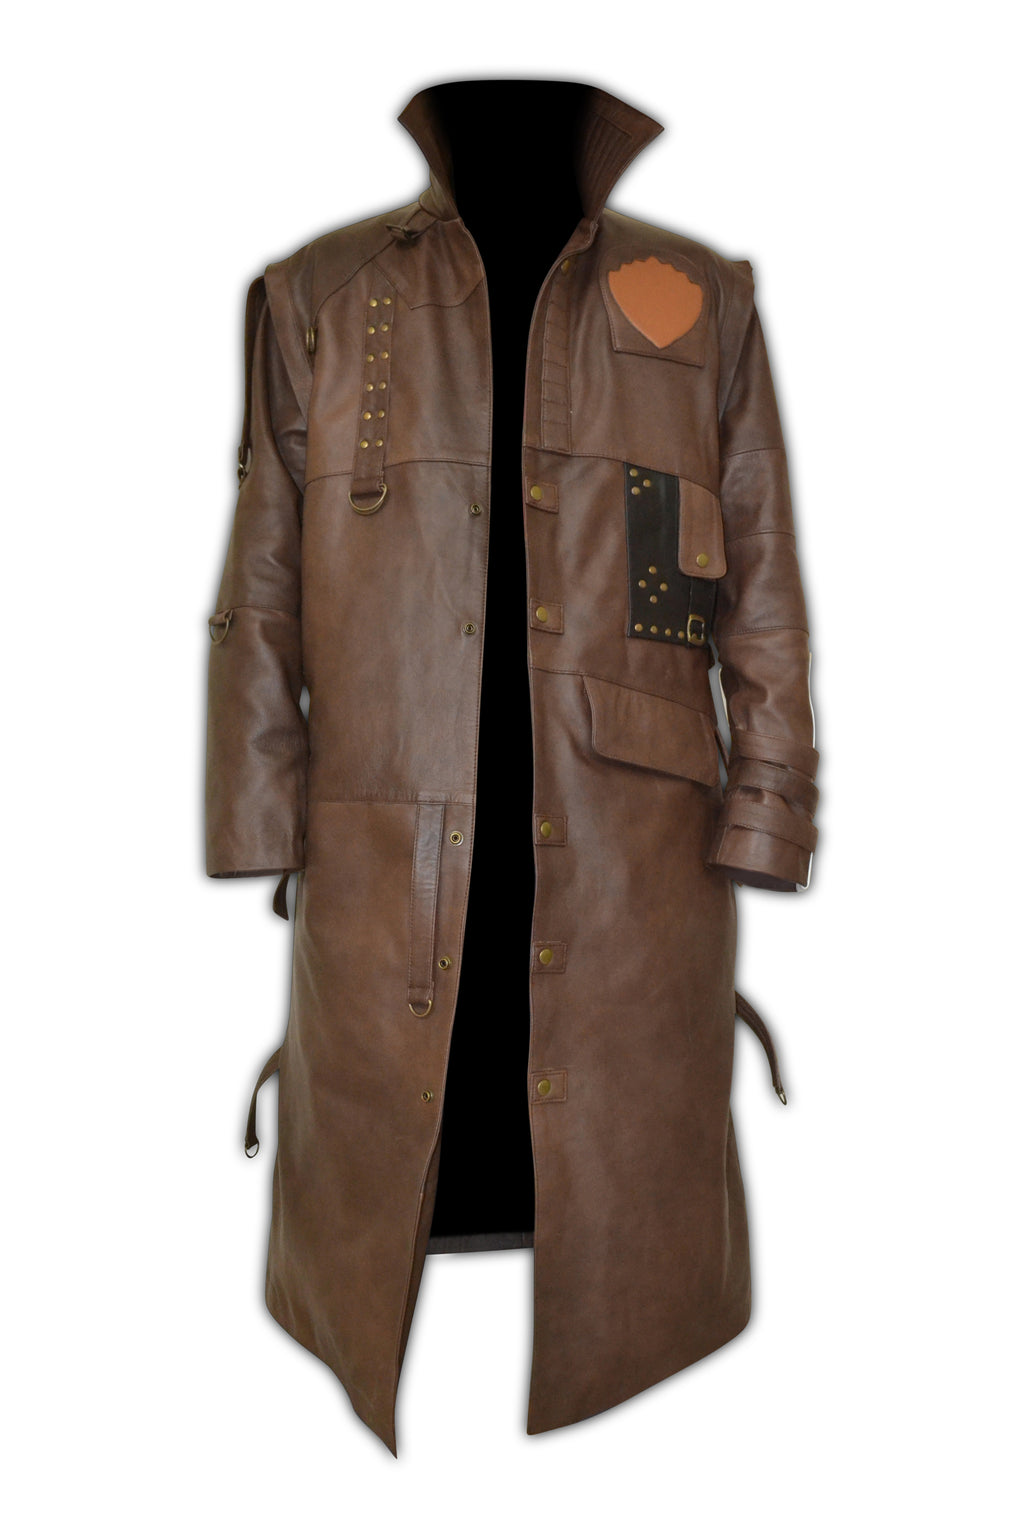 Guardians of the Galaxy Yondu Brown Leather Coat